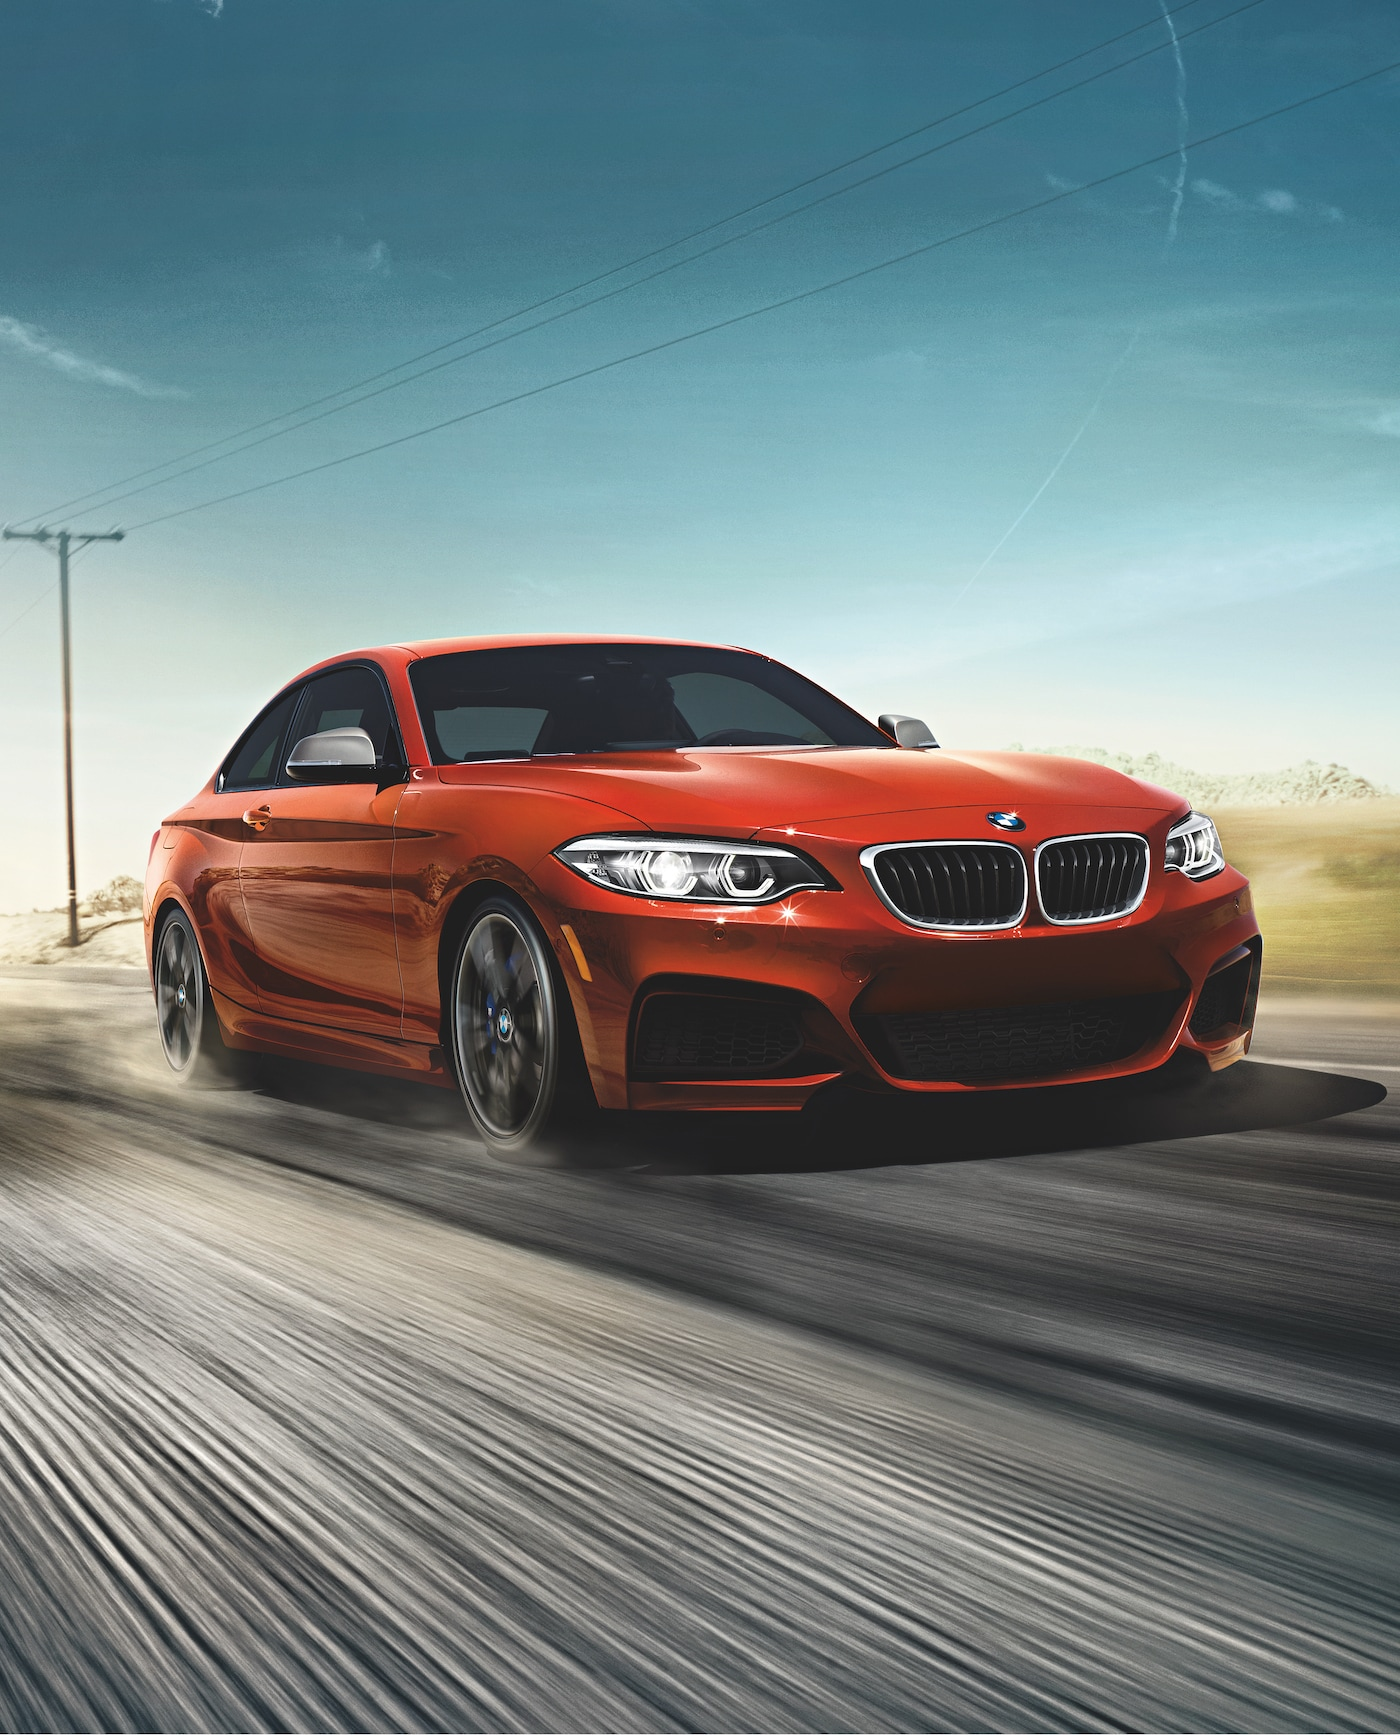 Style and capabilities of the 2020 BMW 2 Series | Red BMW 2 Series